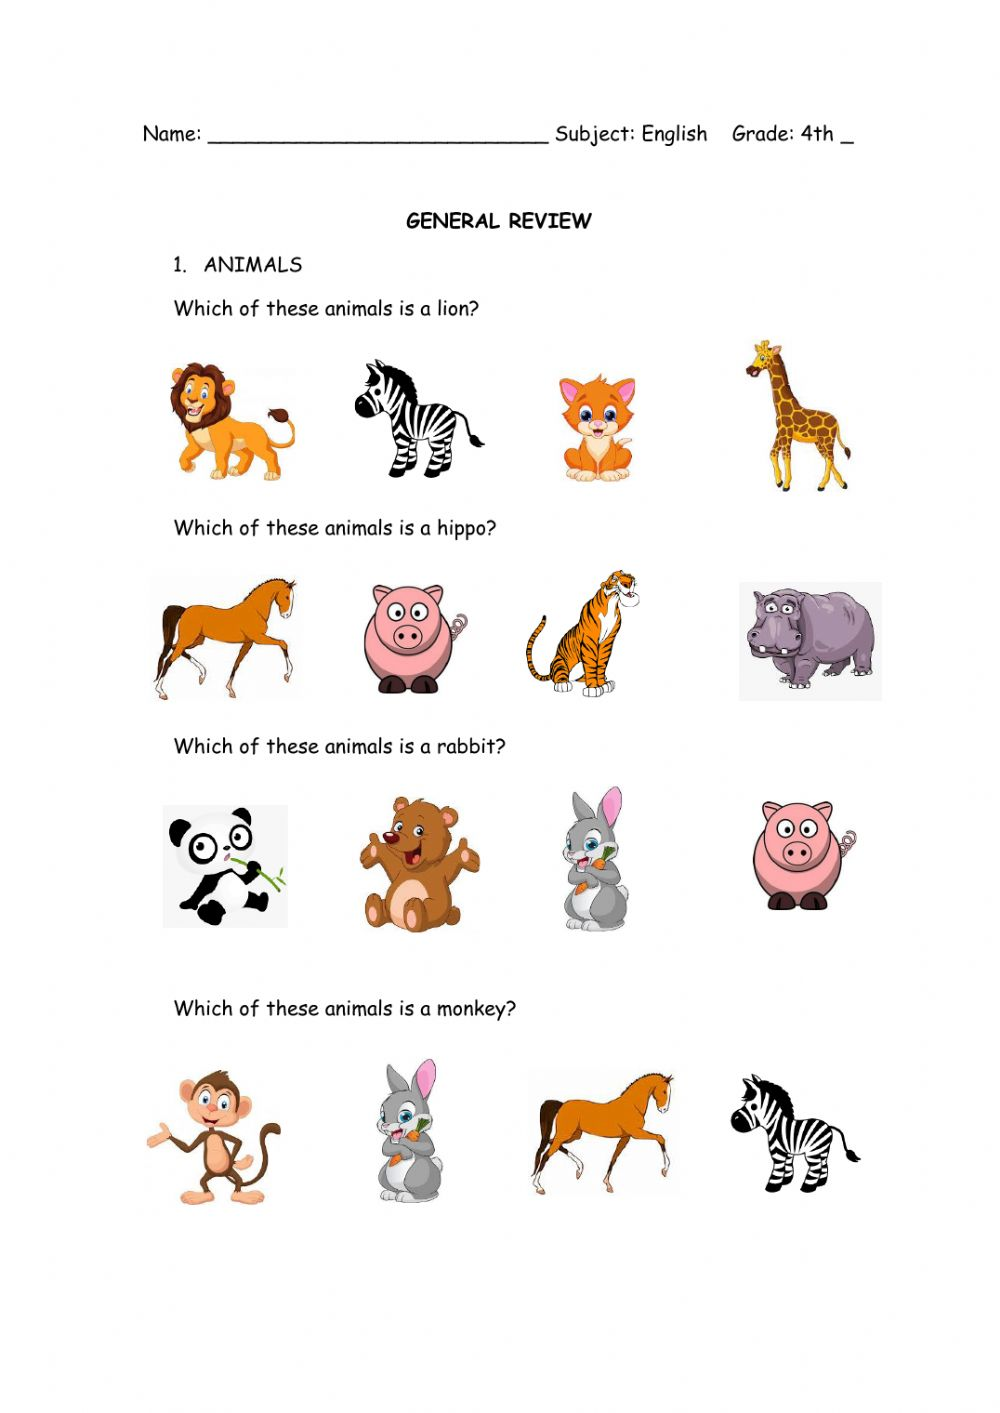 medium resolution of Animals online exercise for 4th